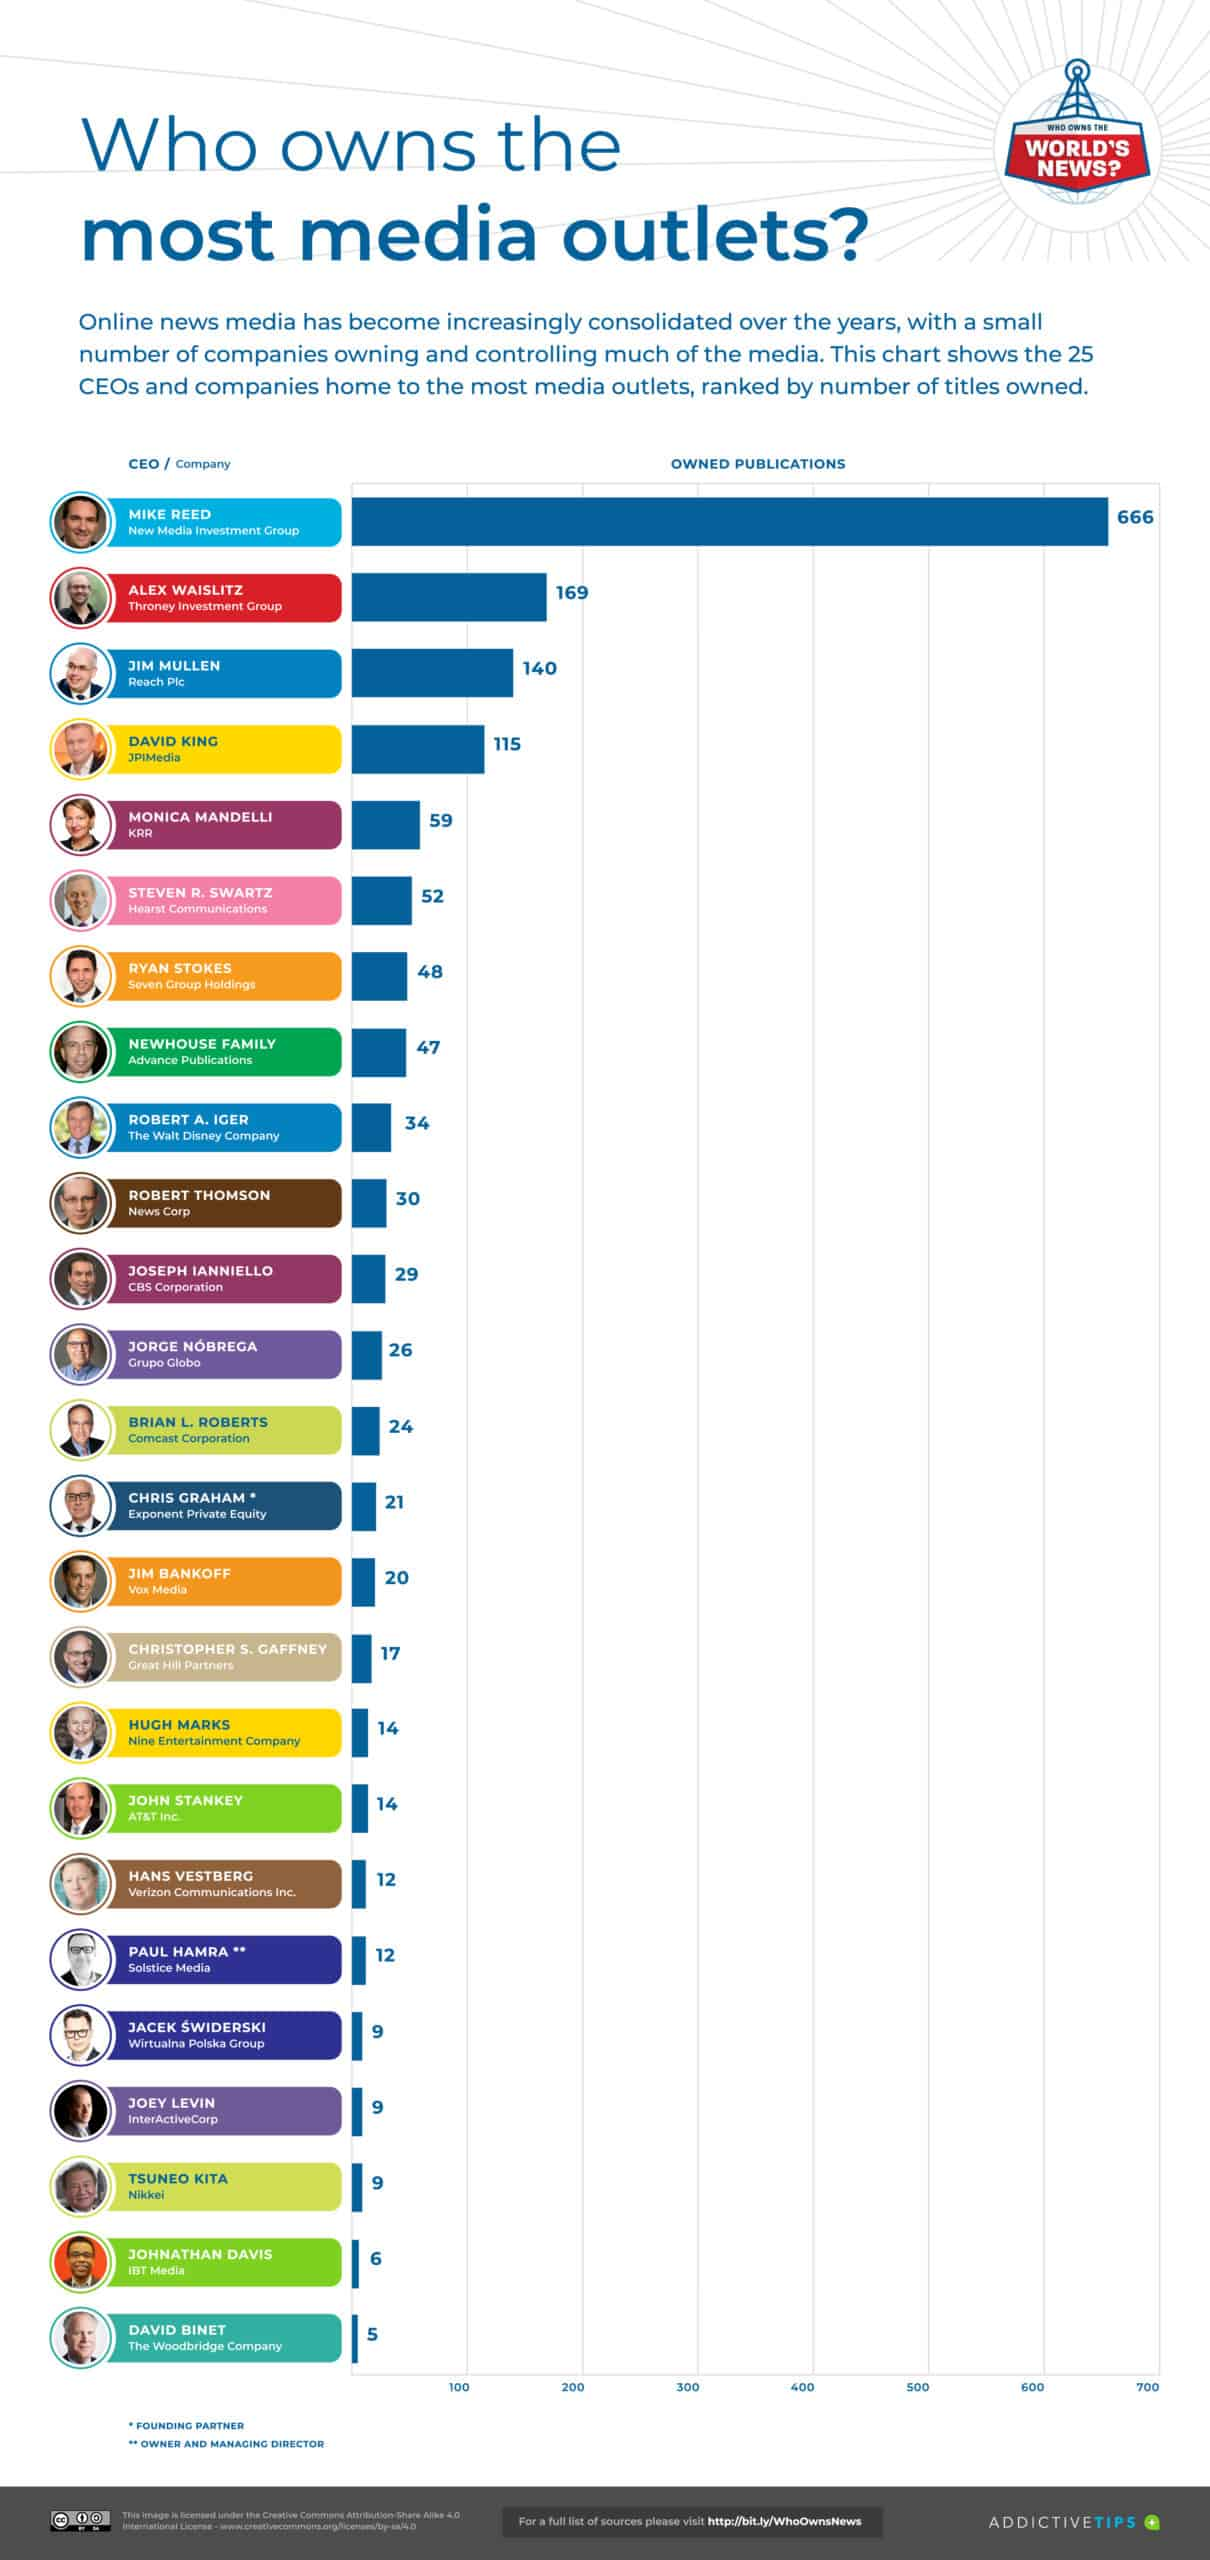 Which CEOs own the most media outlets